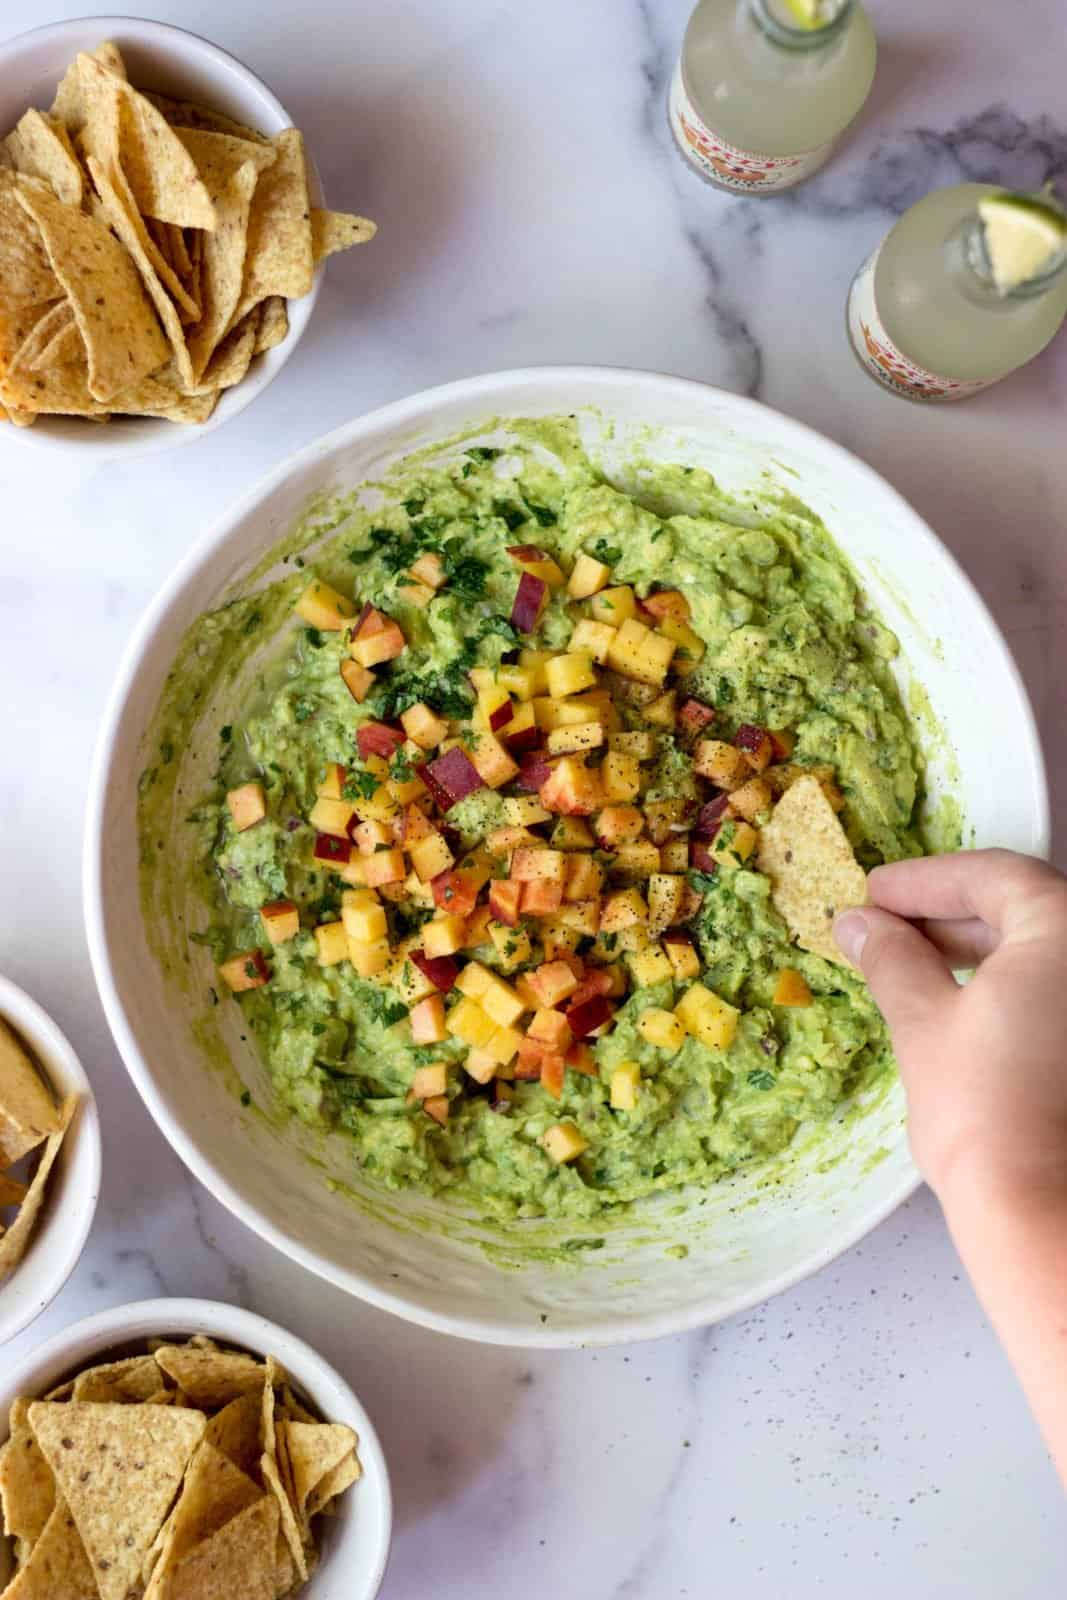 Peach guacamole in a white bowl with a hand and chip dipping into it